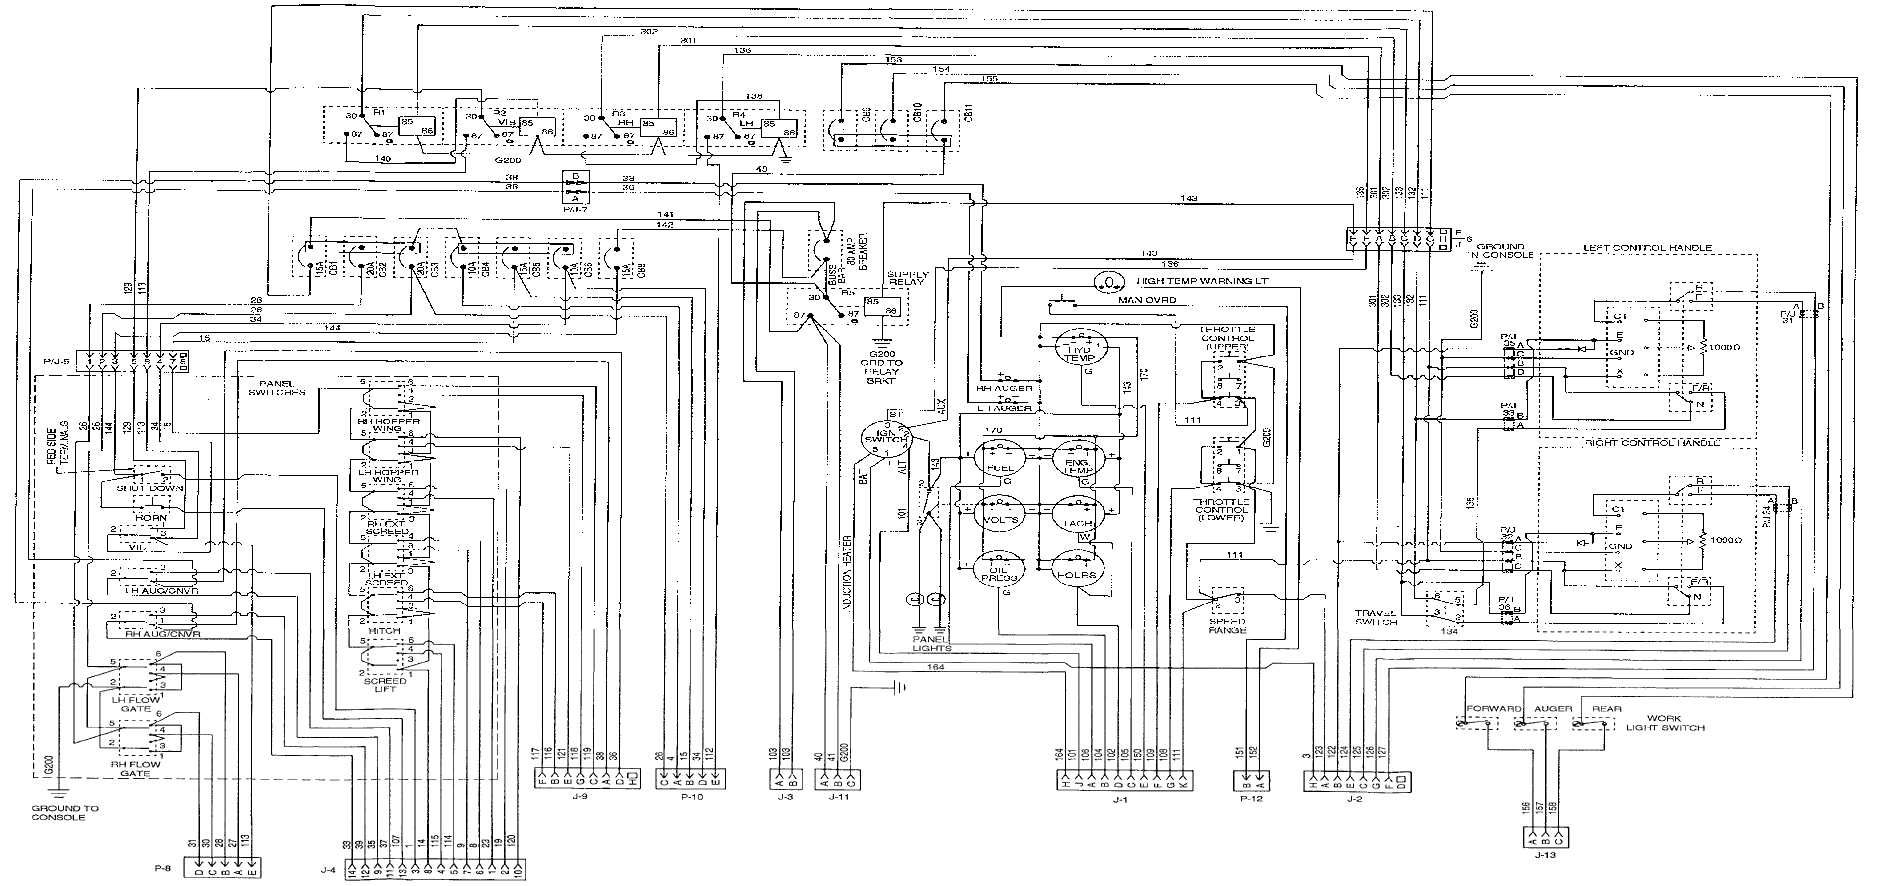 Electrical Schematic Sheet 1 Of 2